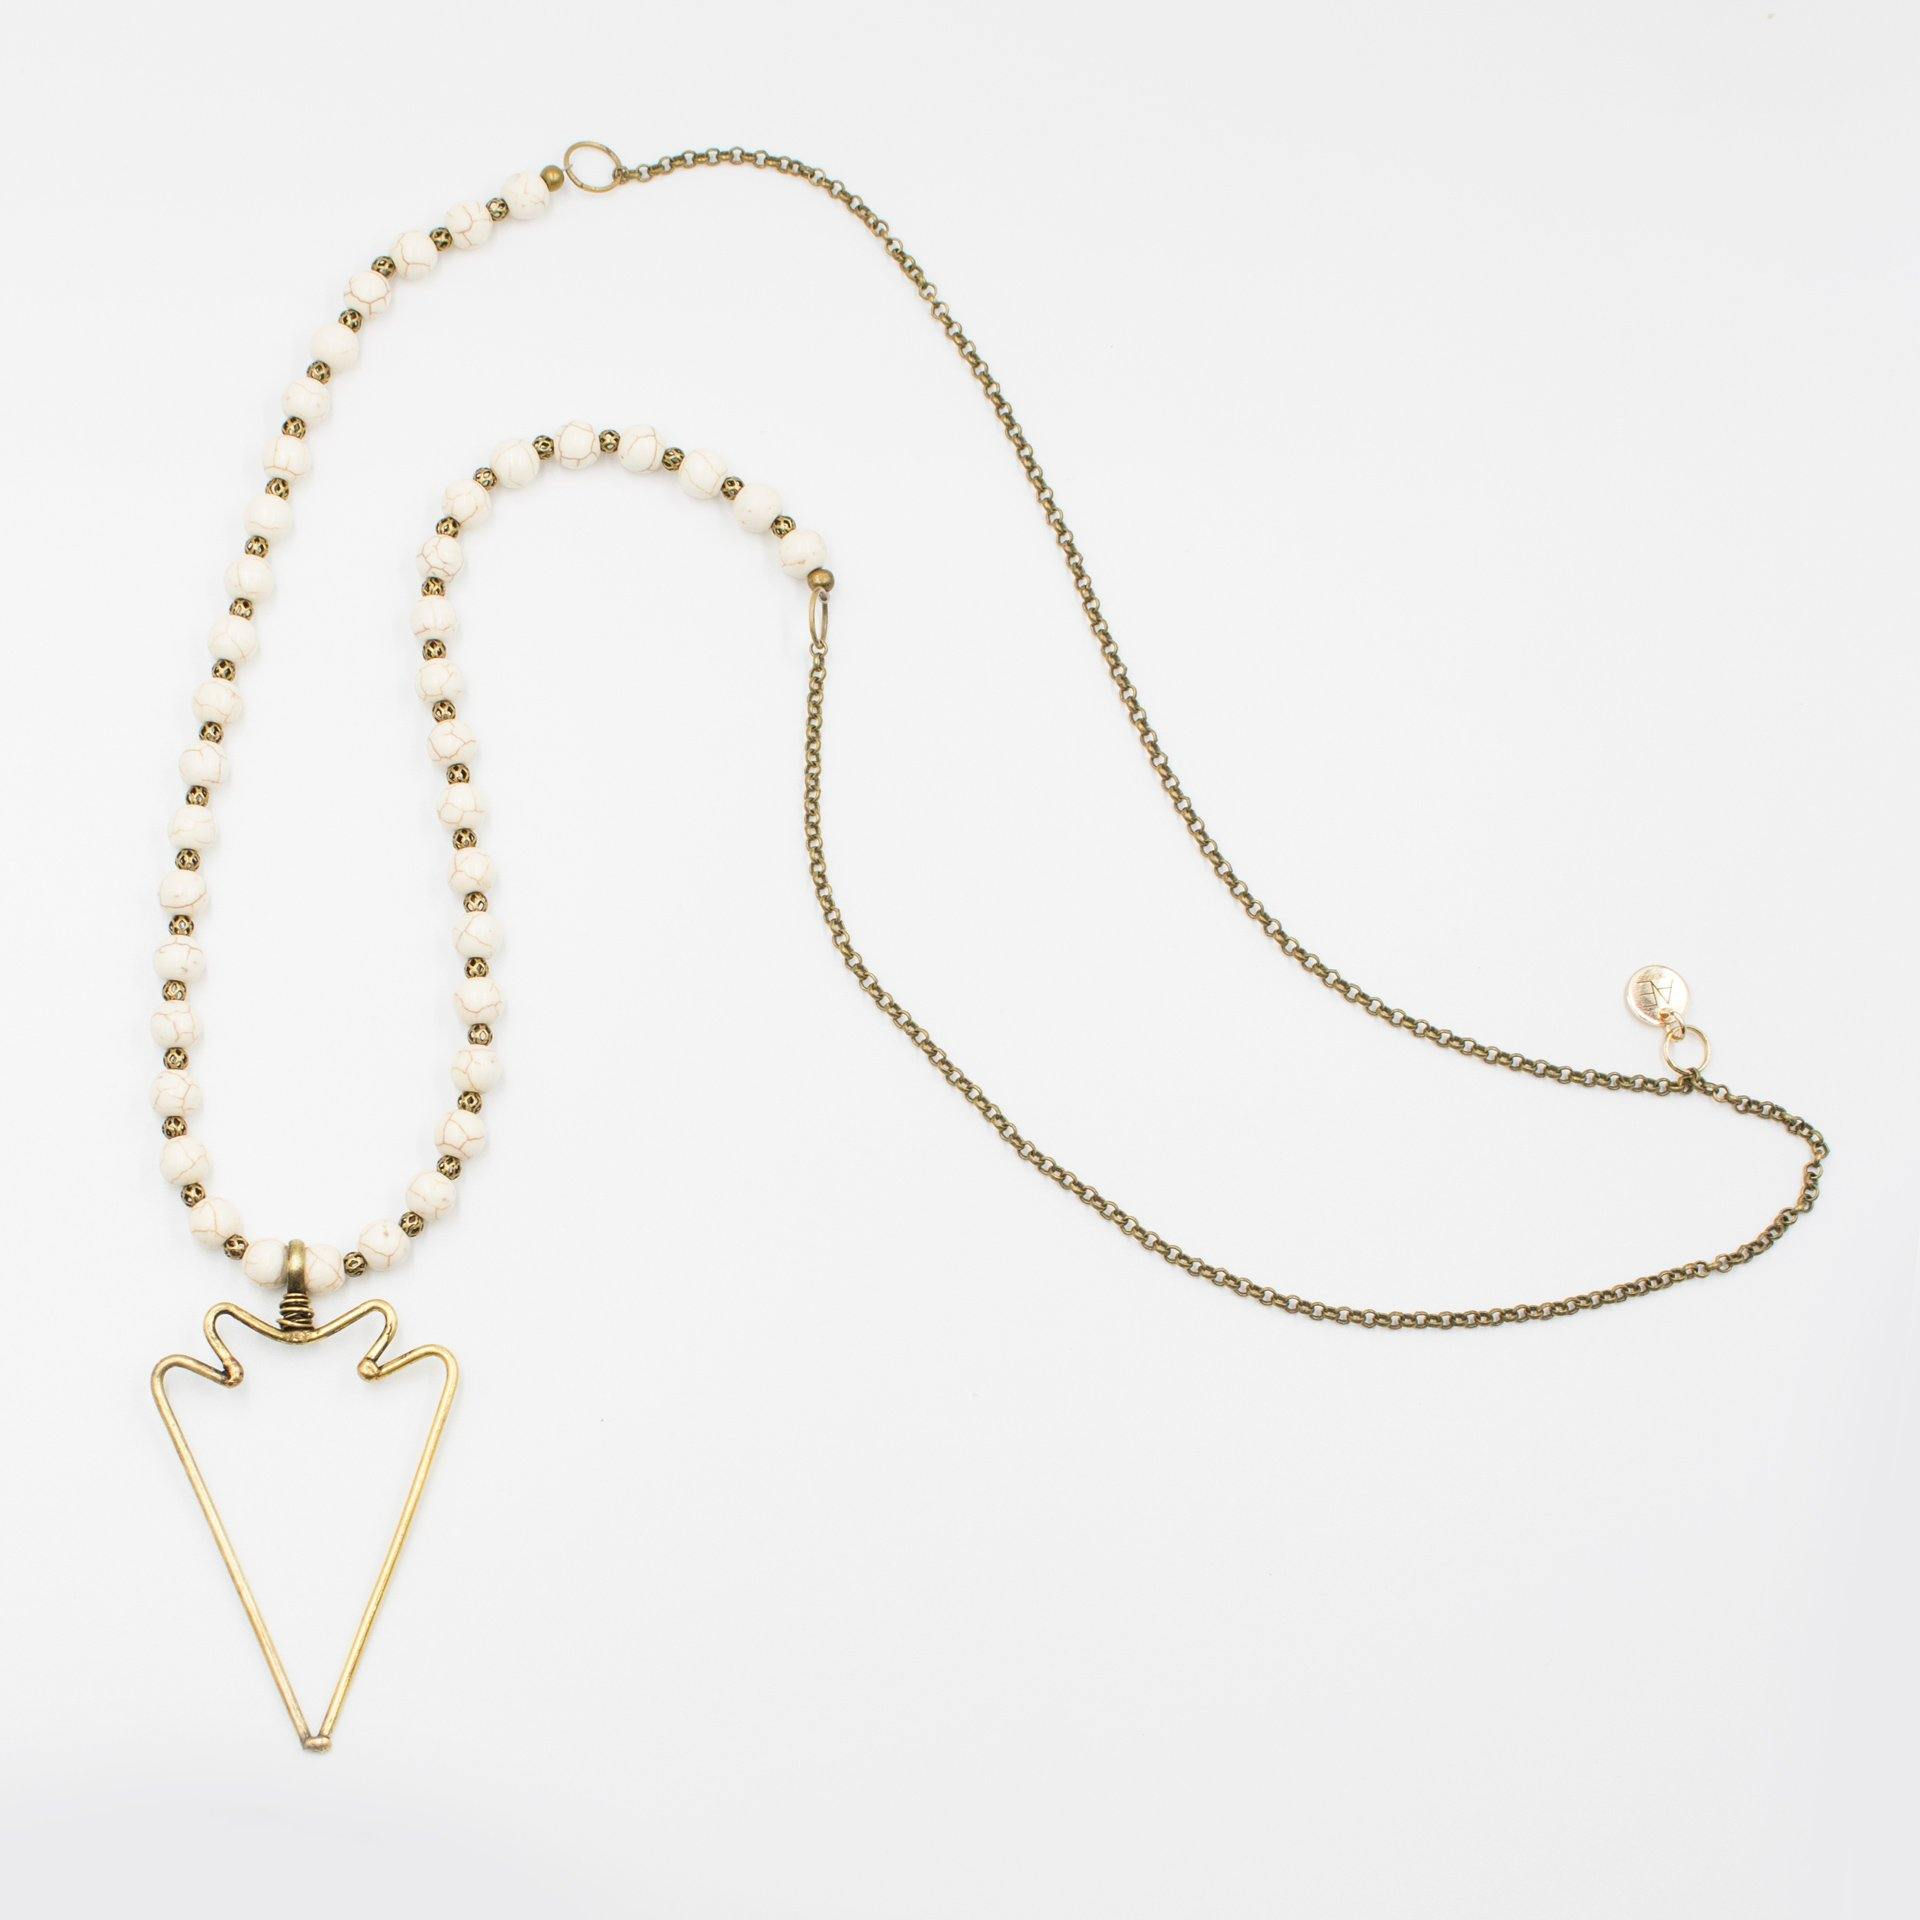 Hollow Arrow Necklace - Arlo and Arrows